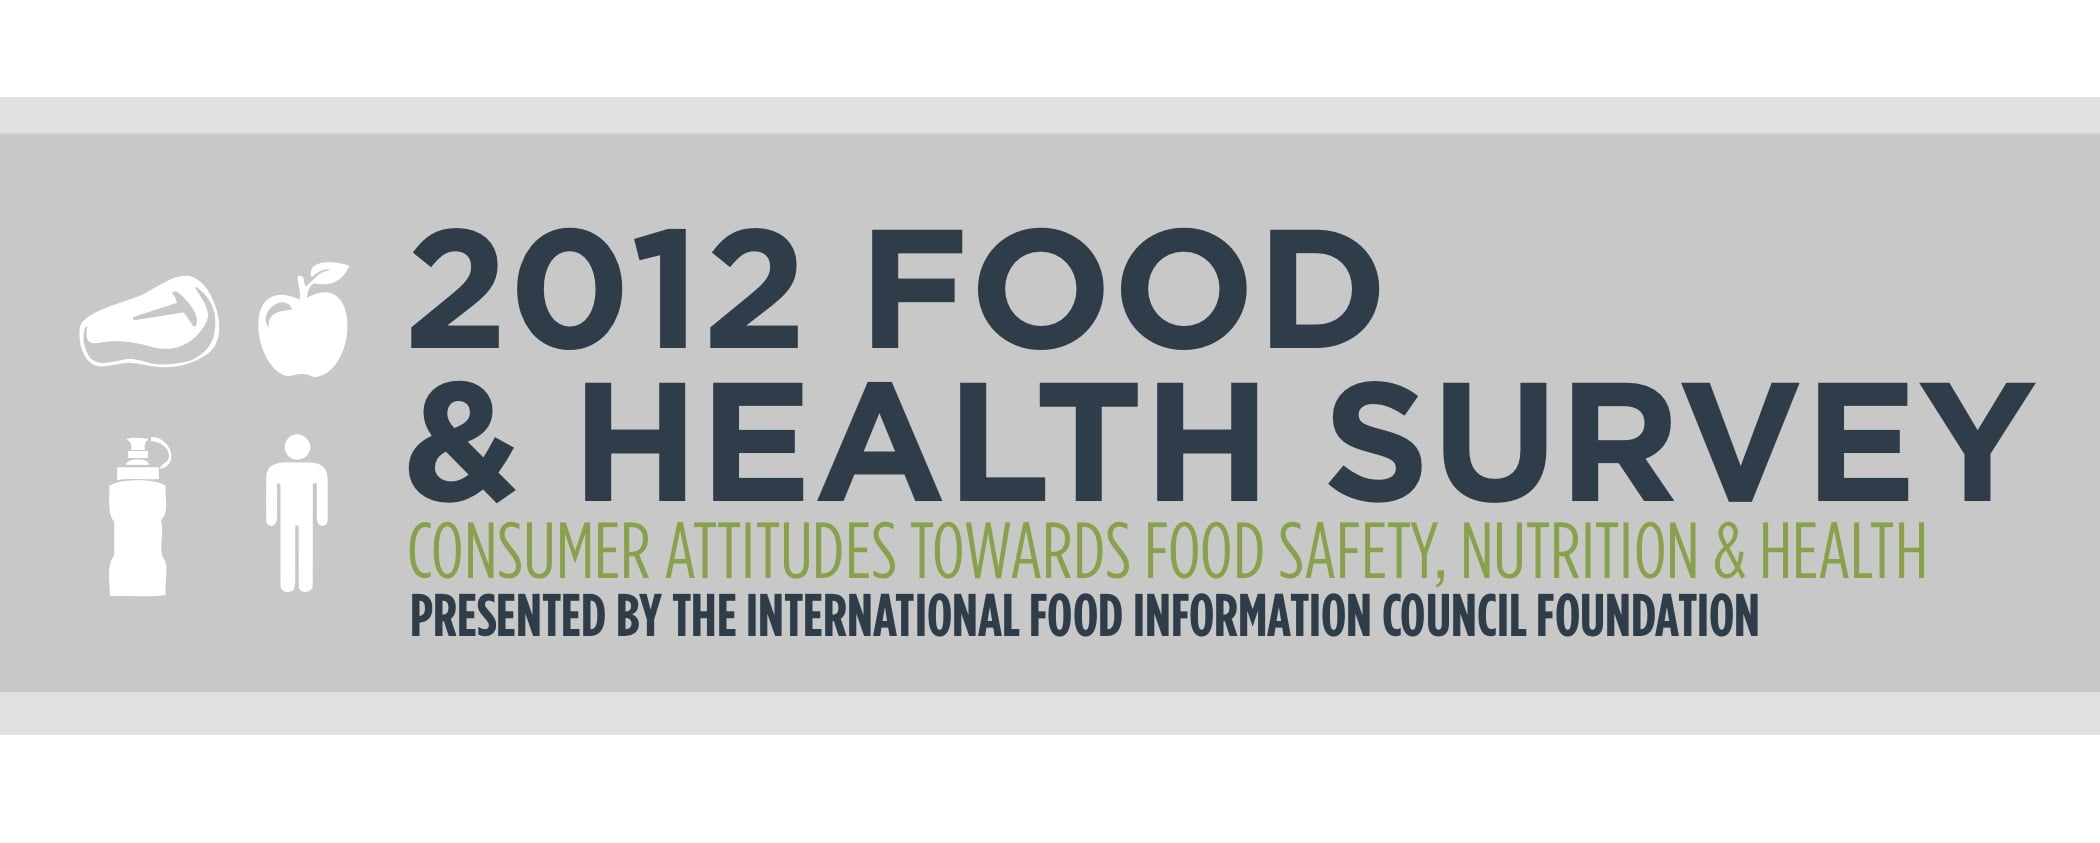 2012 Food & Health Survey: Consumer Attitudes toward Food Safety